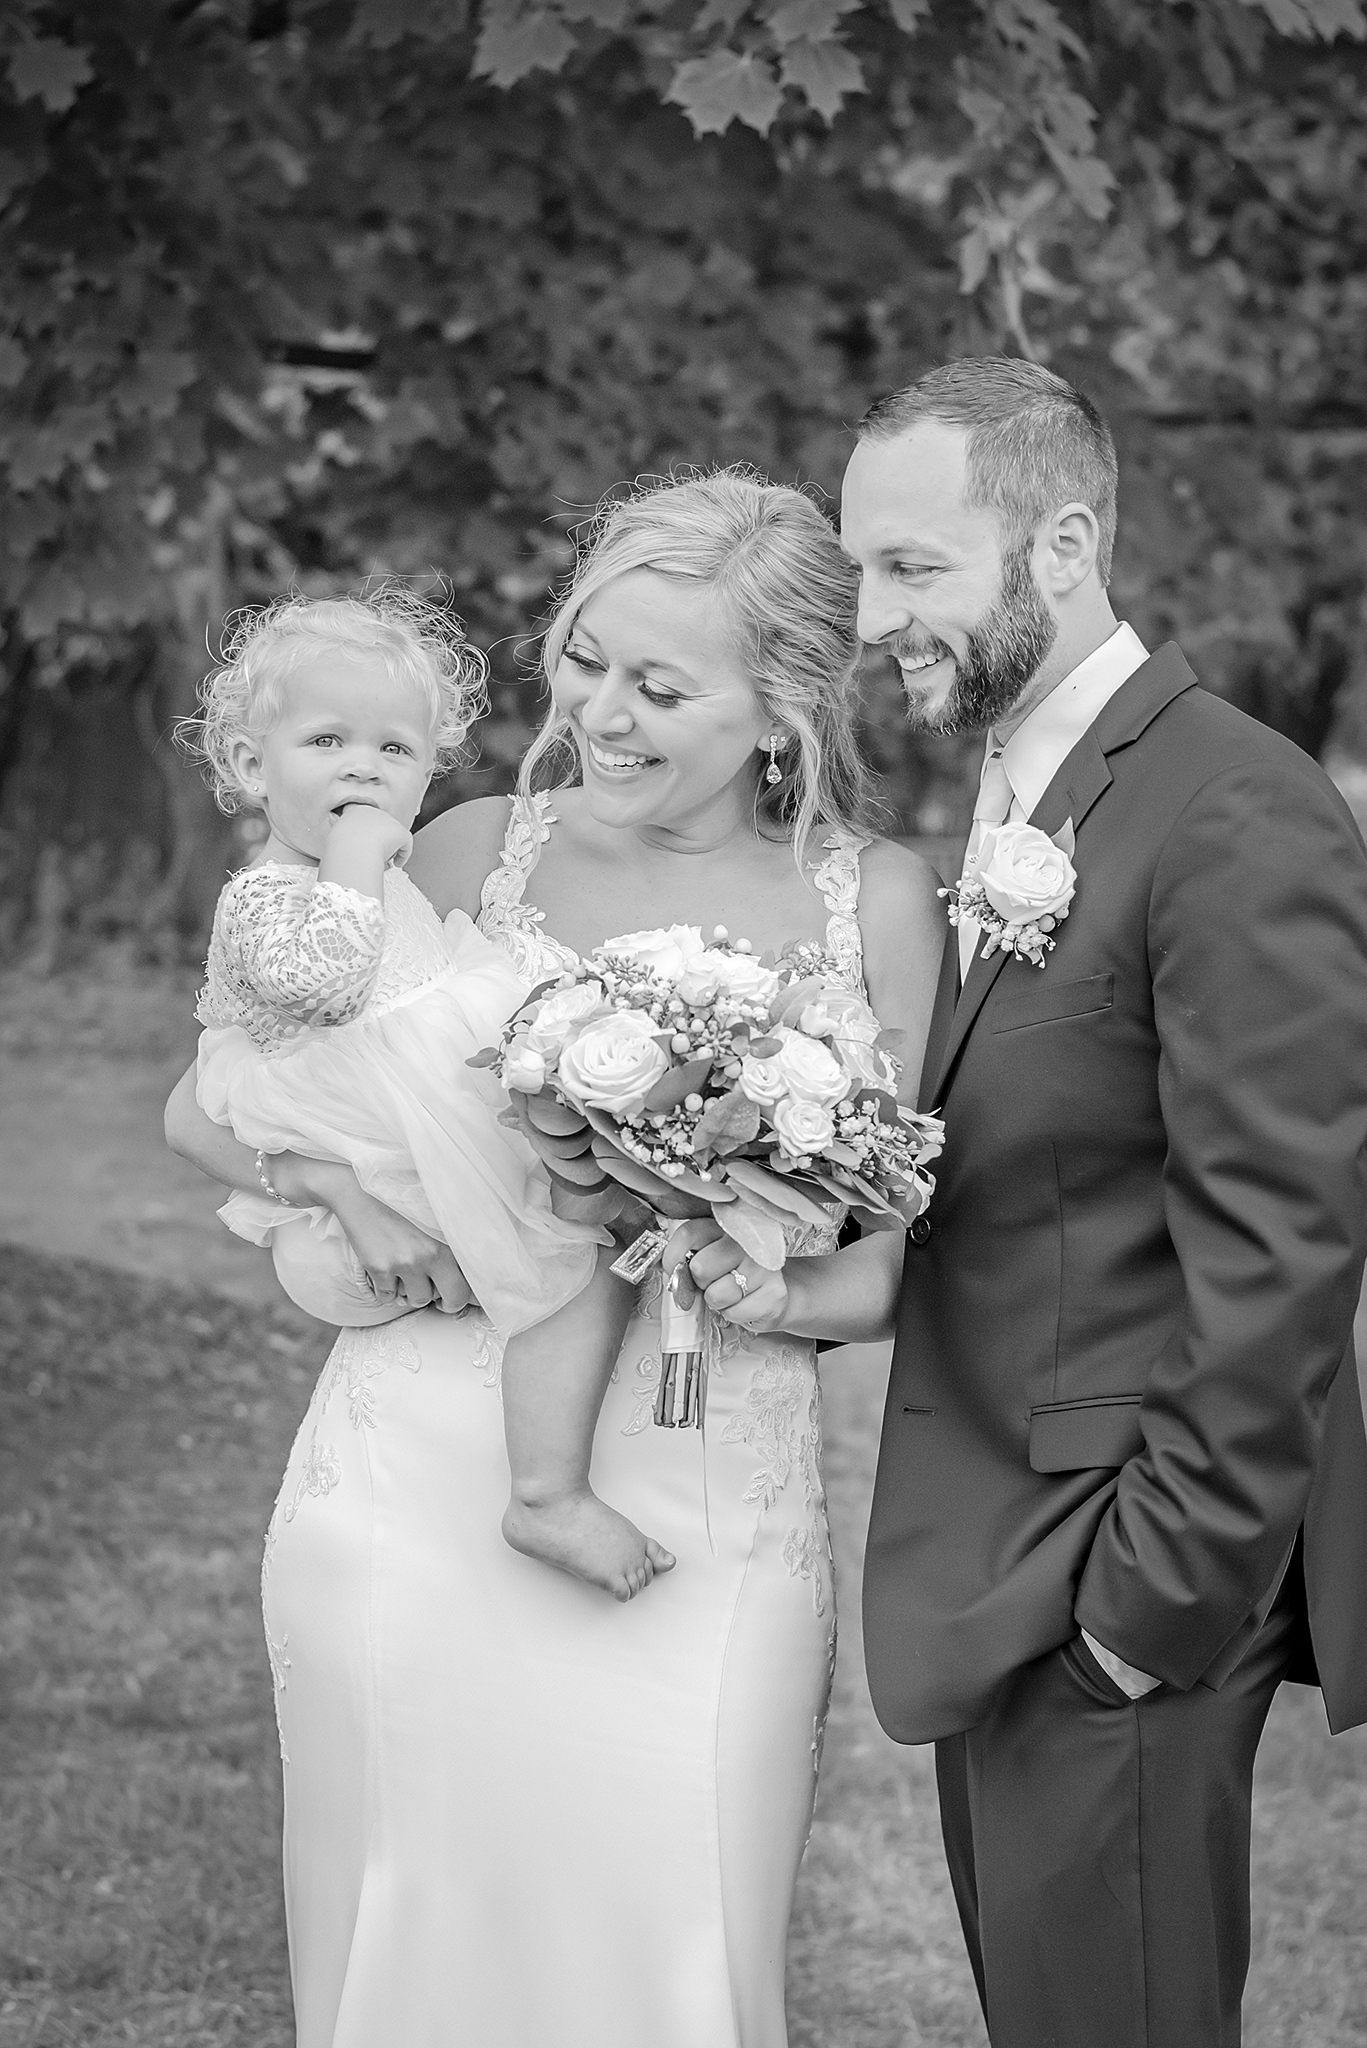 Lindsay-Adkins-Photography-Michigan-Wedding-Photographer-Tecumseh-Michigan-28